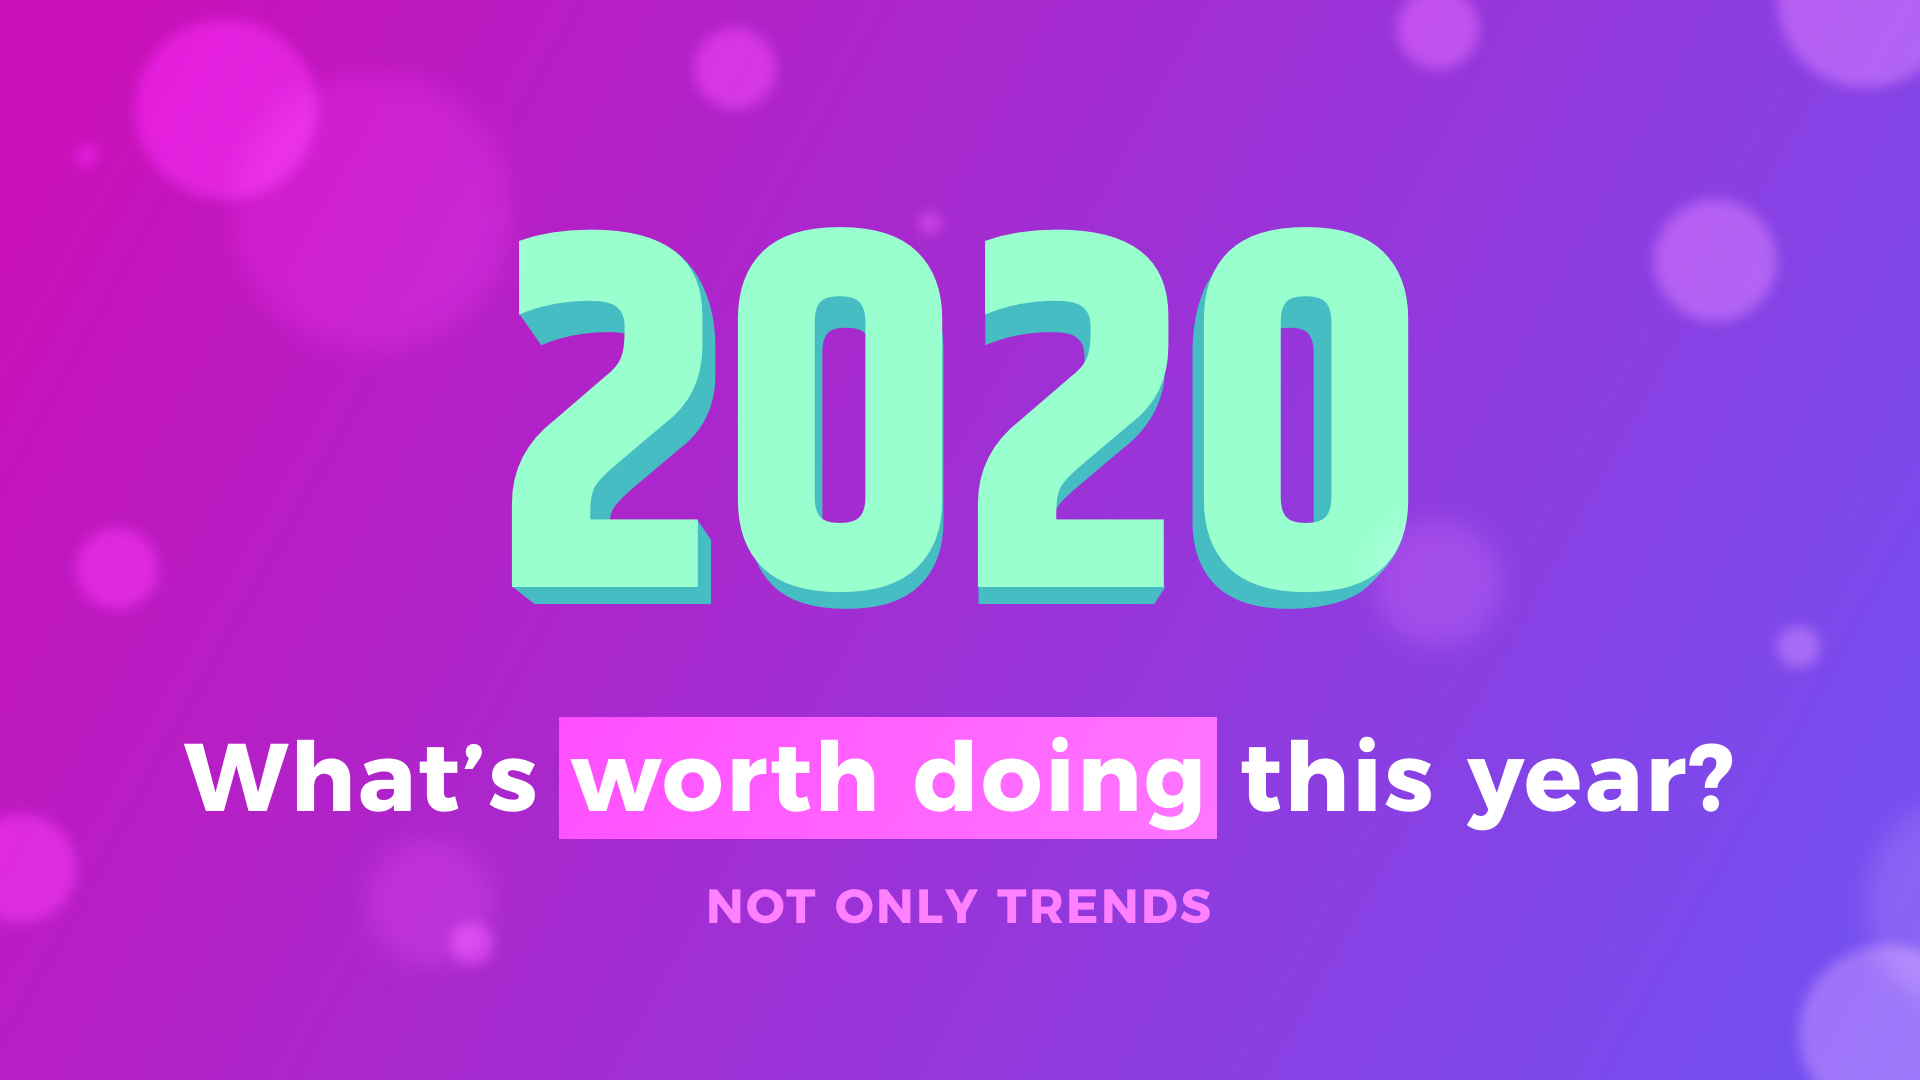 2020 as a designer to boost career